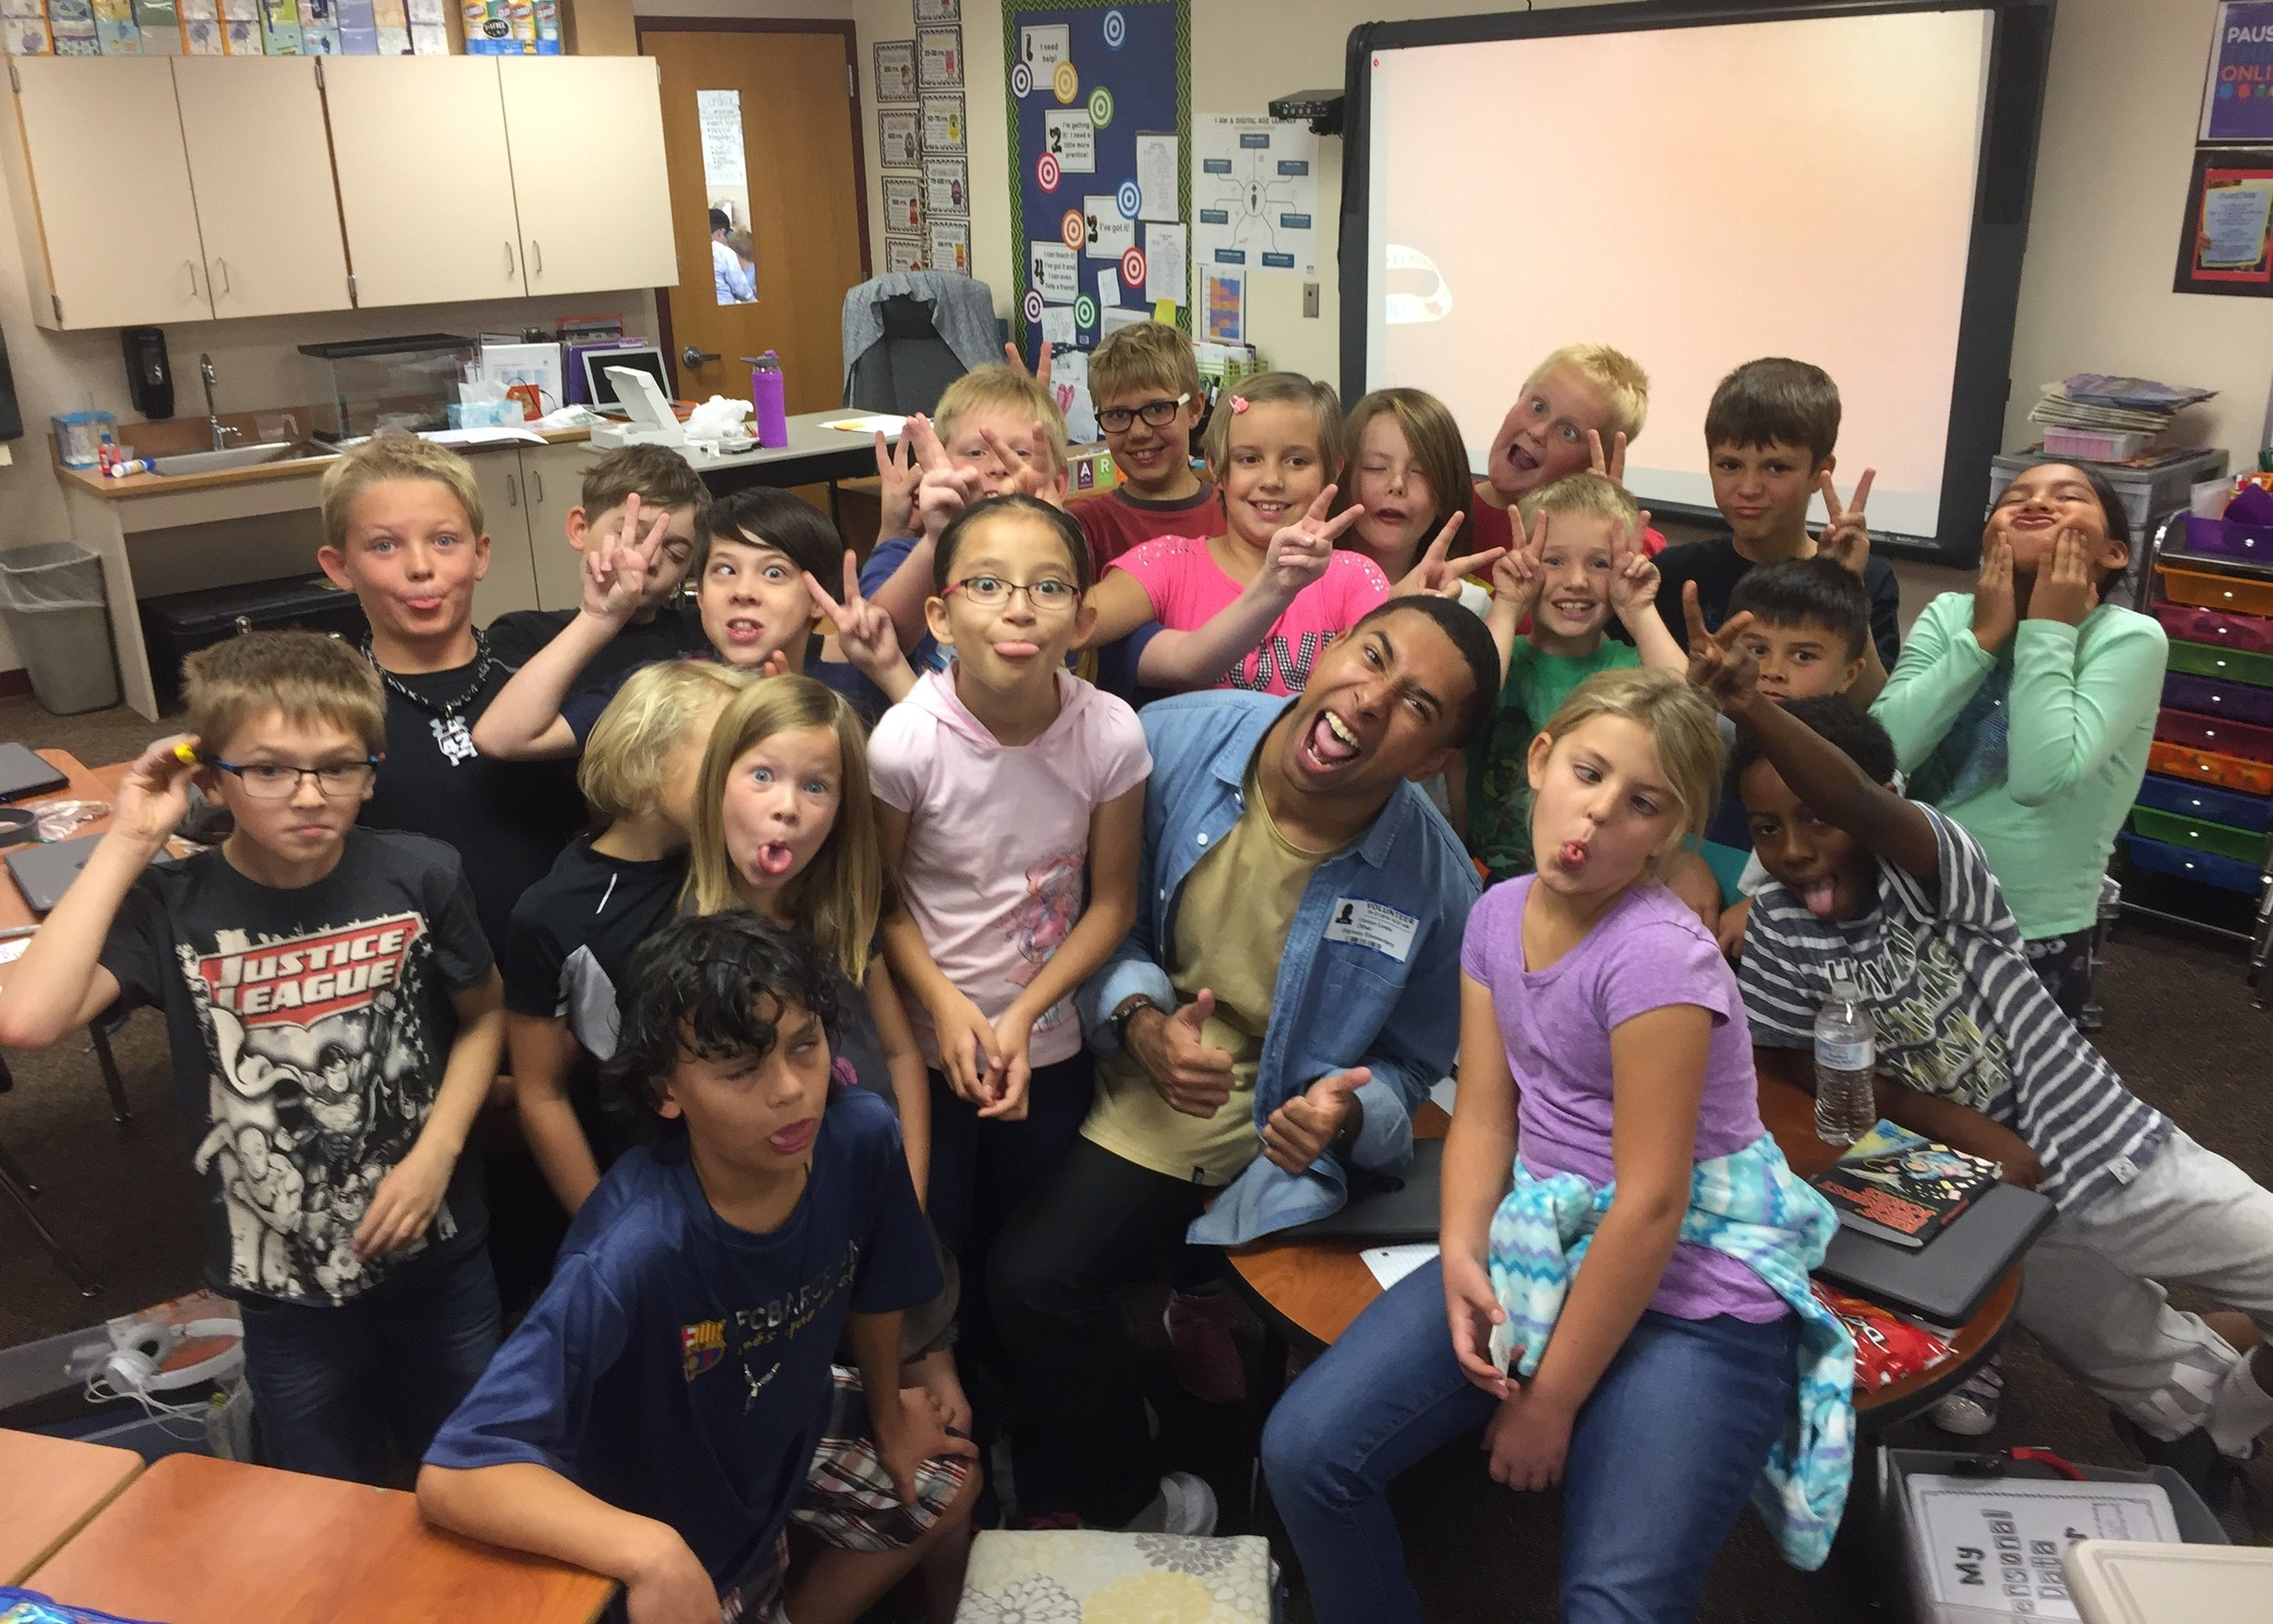 Students from Mrs. Willis' 4th Grade class at Odyssey Elementary School